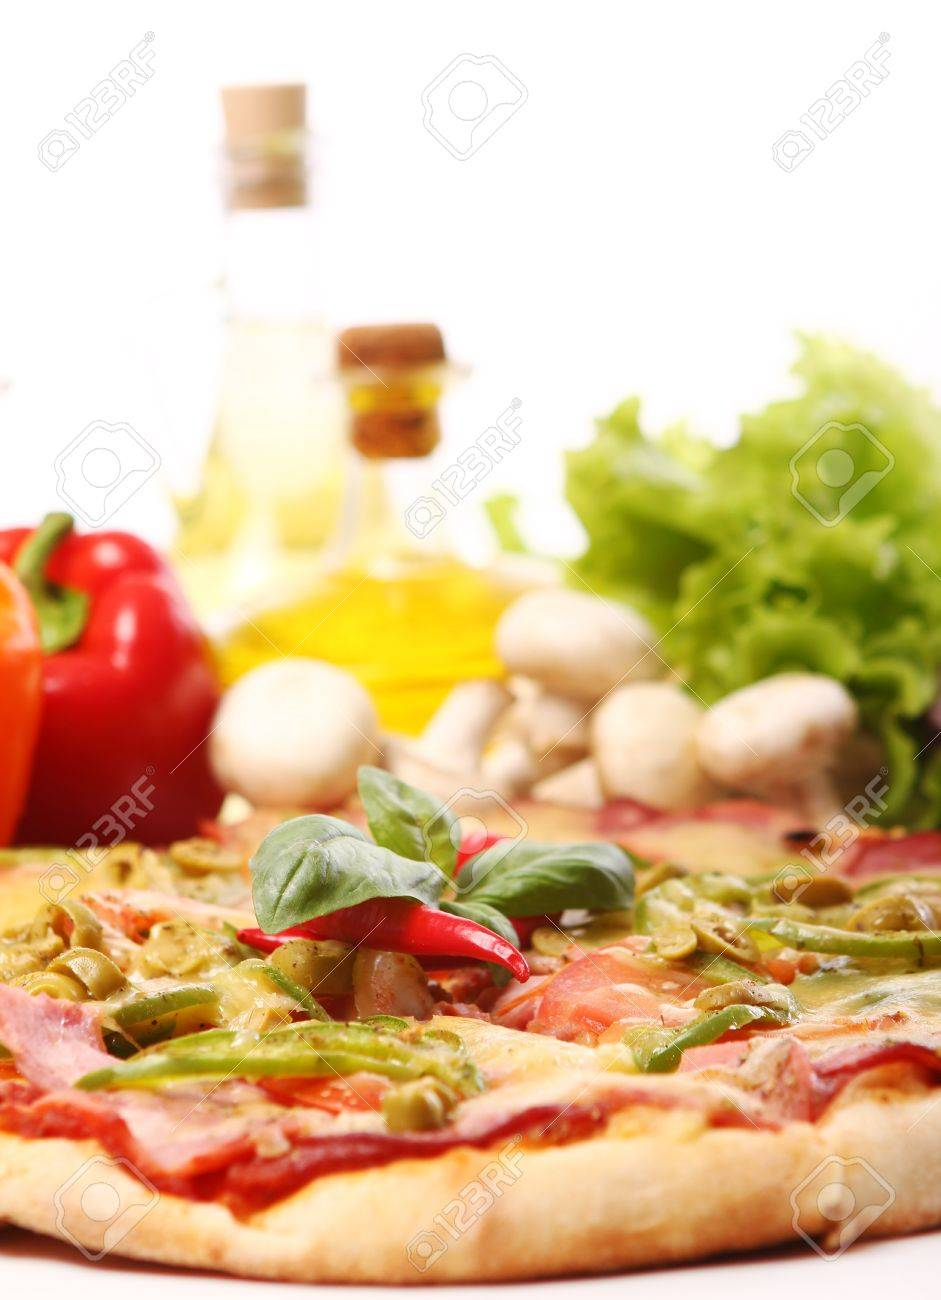 Fresh and tasty pizza on kitchen table Stock Photo - 10883389